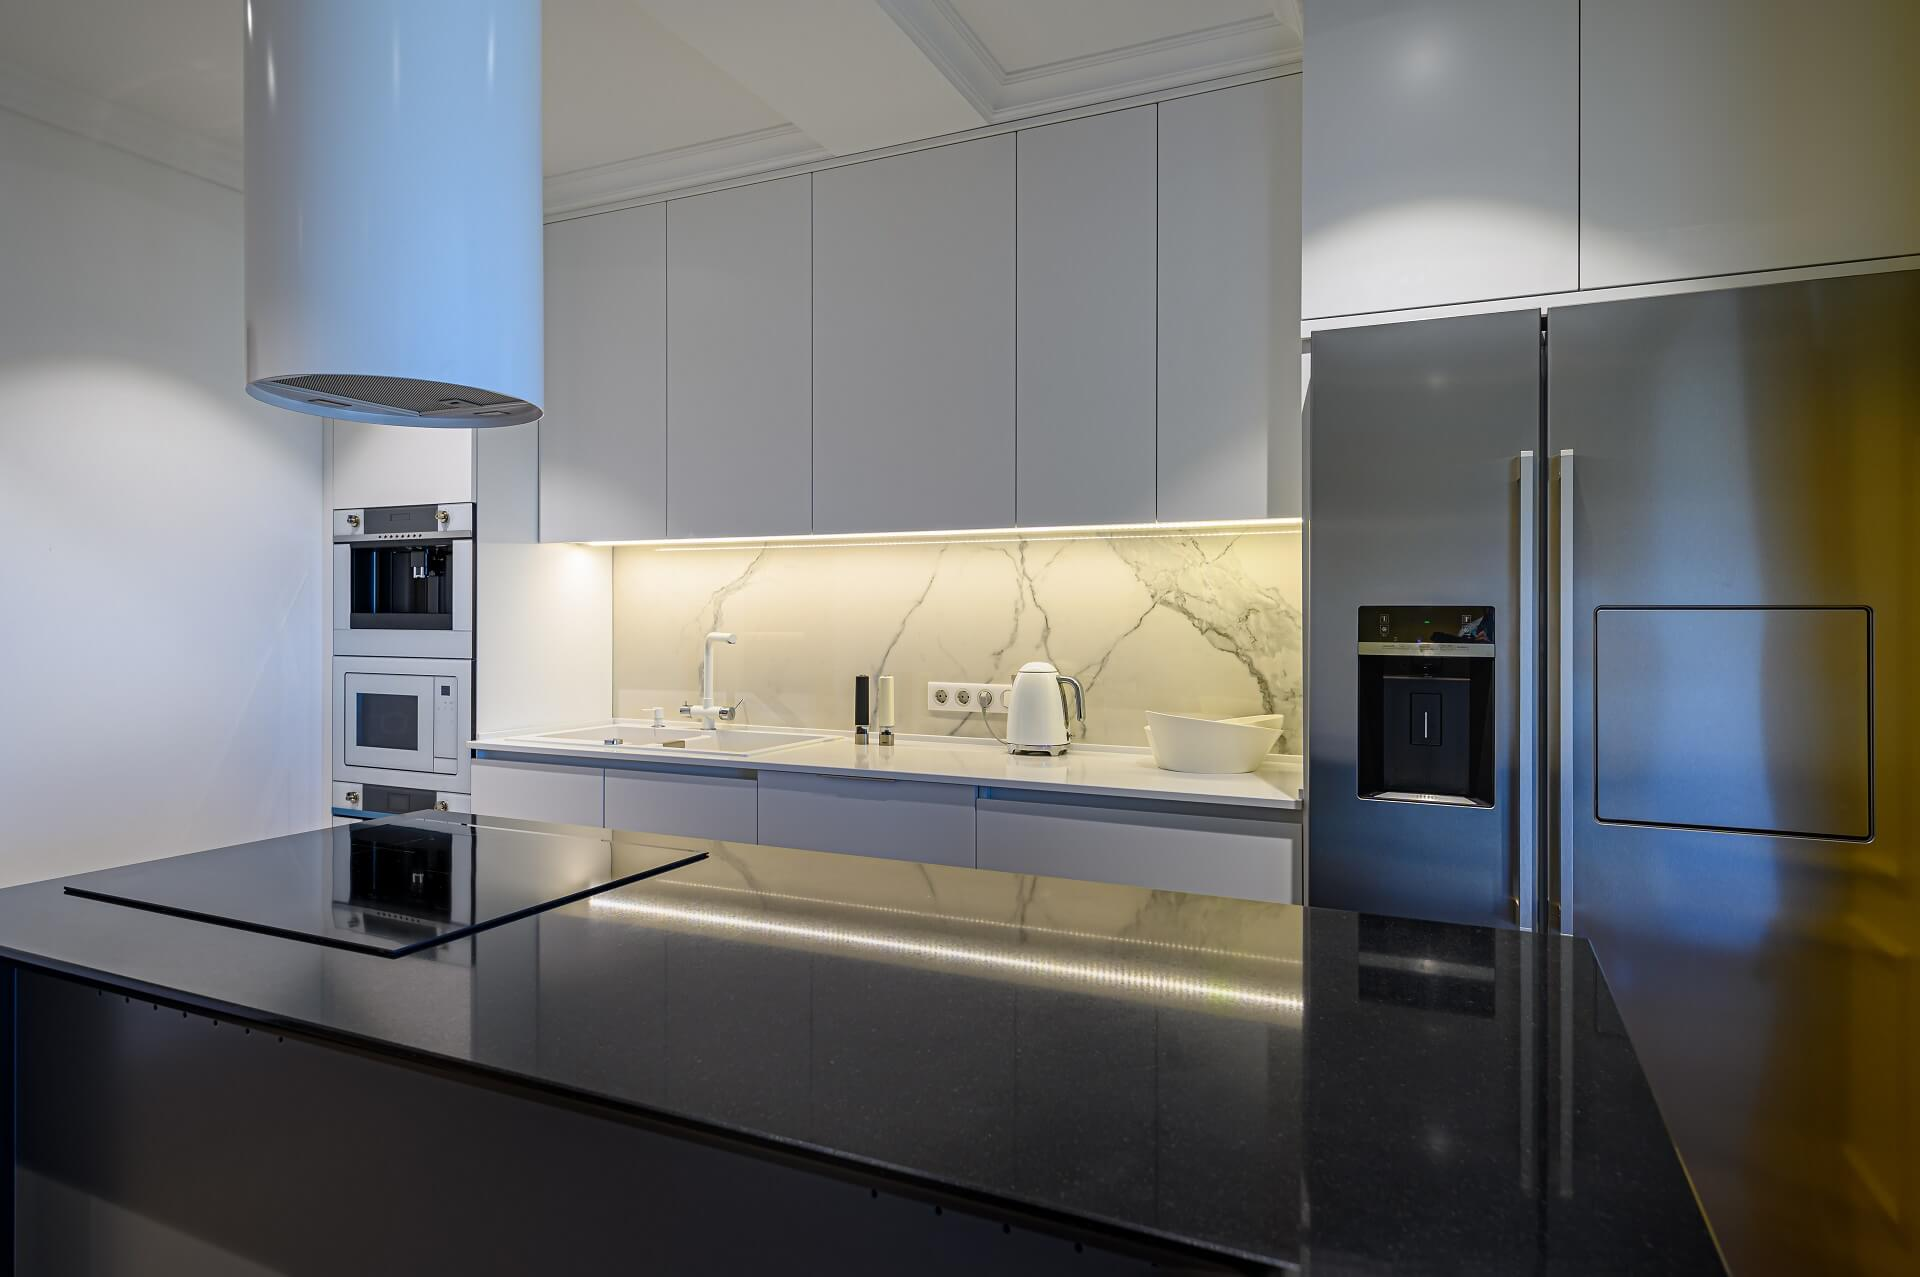 Kitchen appliance trends 2021: the latest ideas for a smart kitchen design